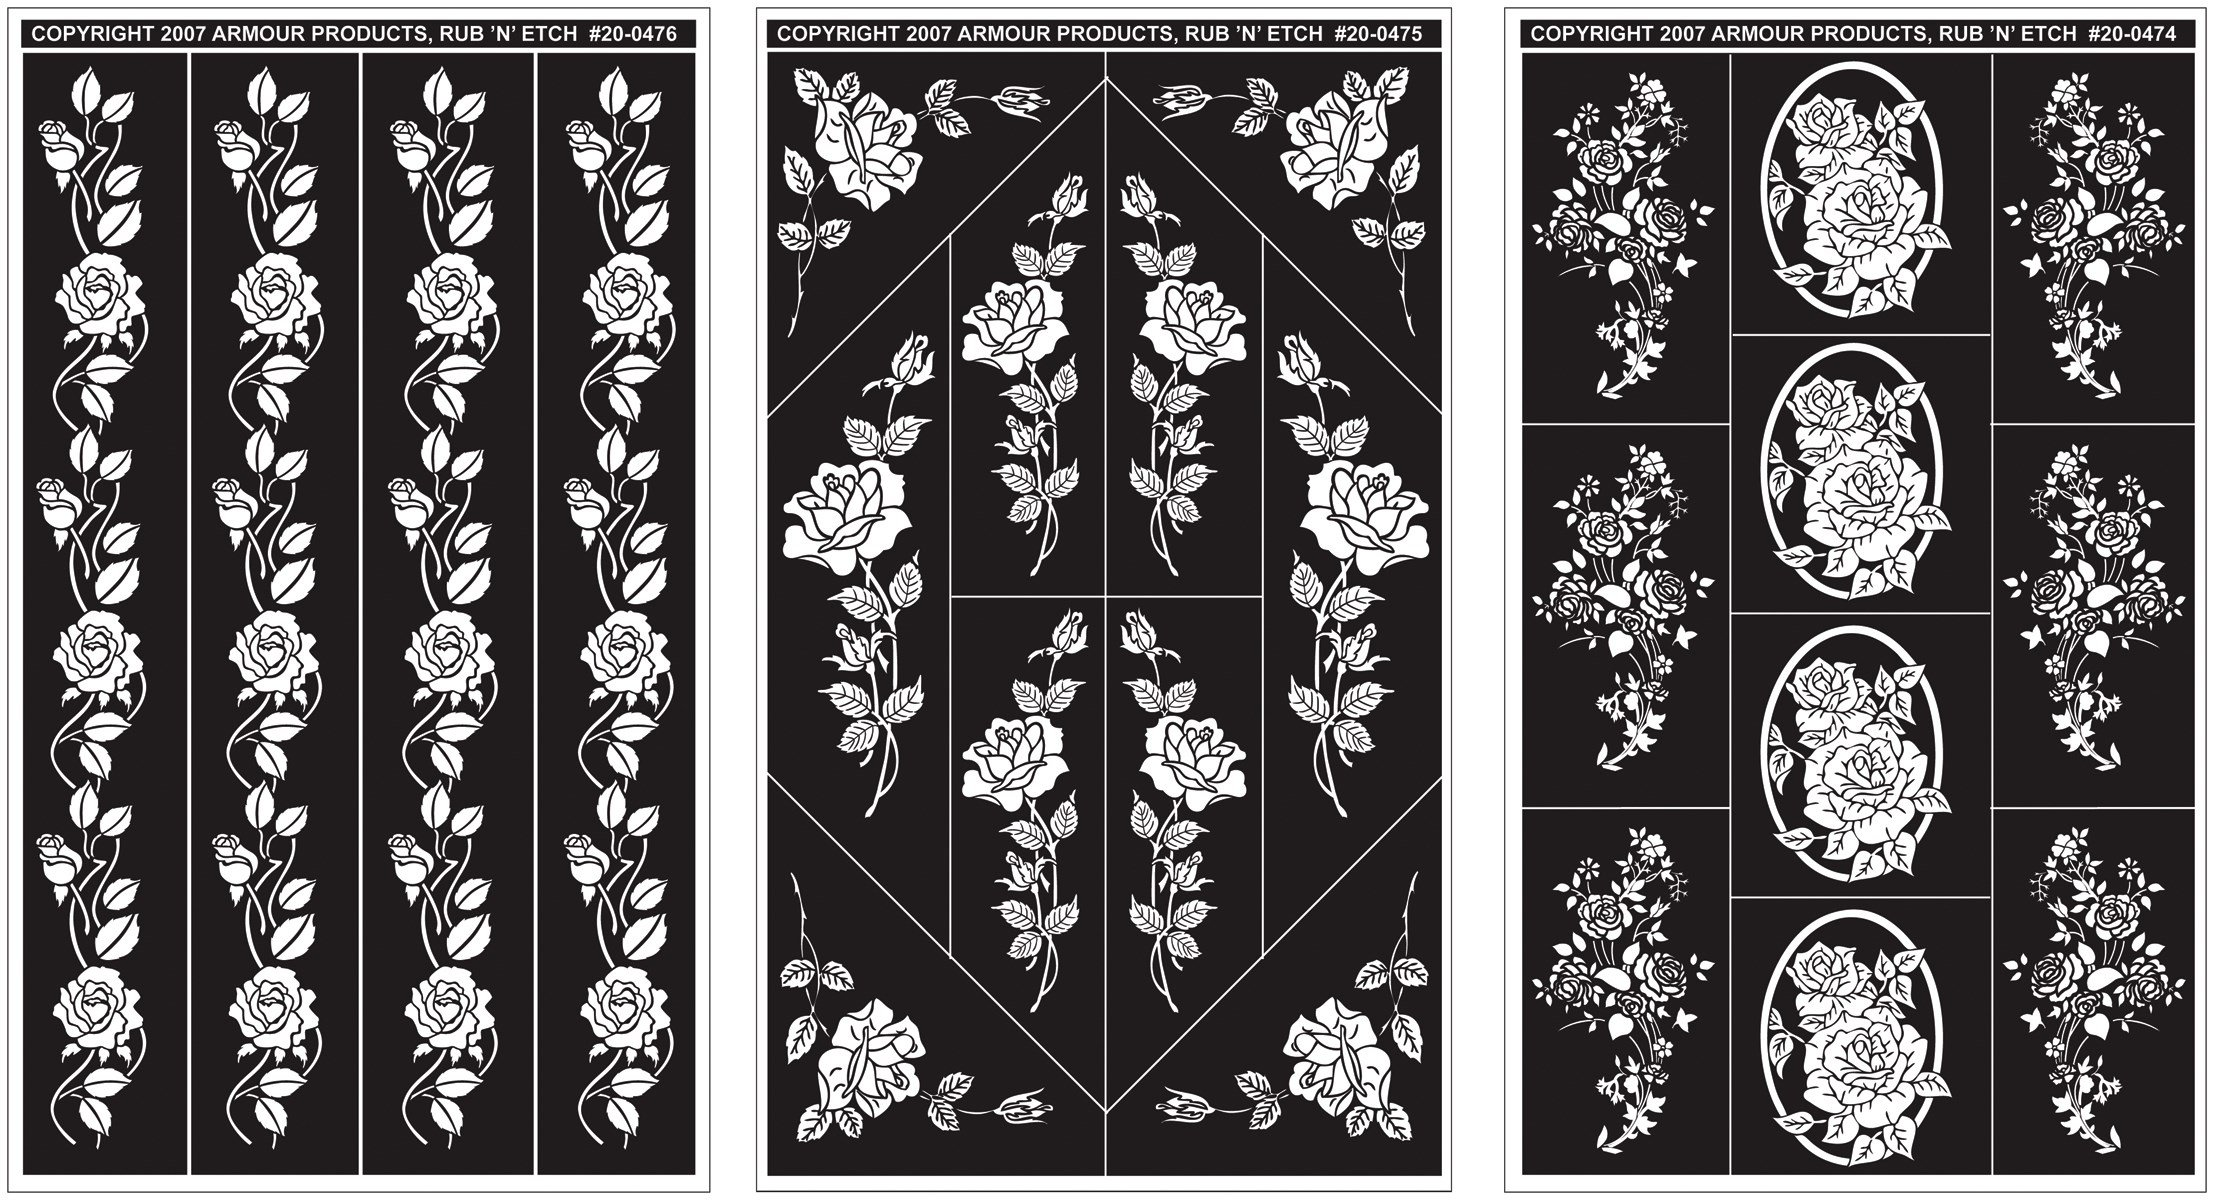 Armour Products Rub 'n' Etch Glass Etching Stencils 5in. x 8in. 3/Pkg Rose Designs 12-7042